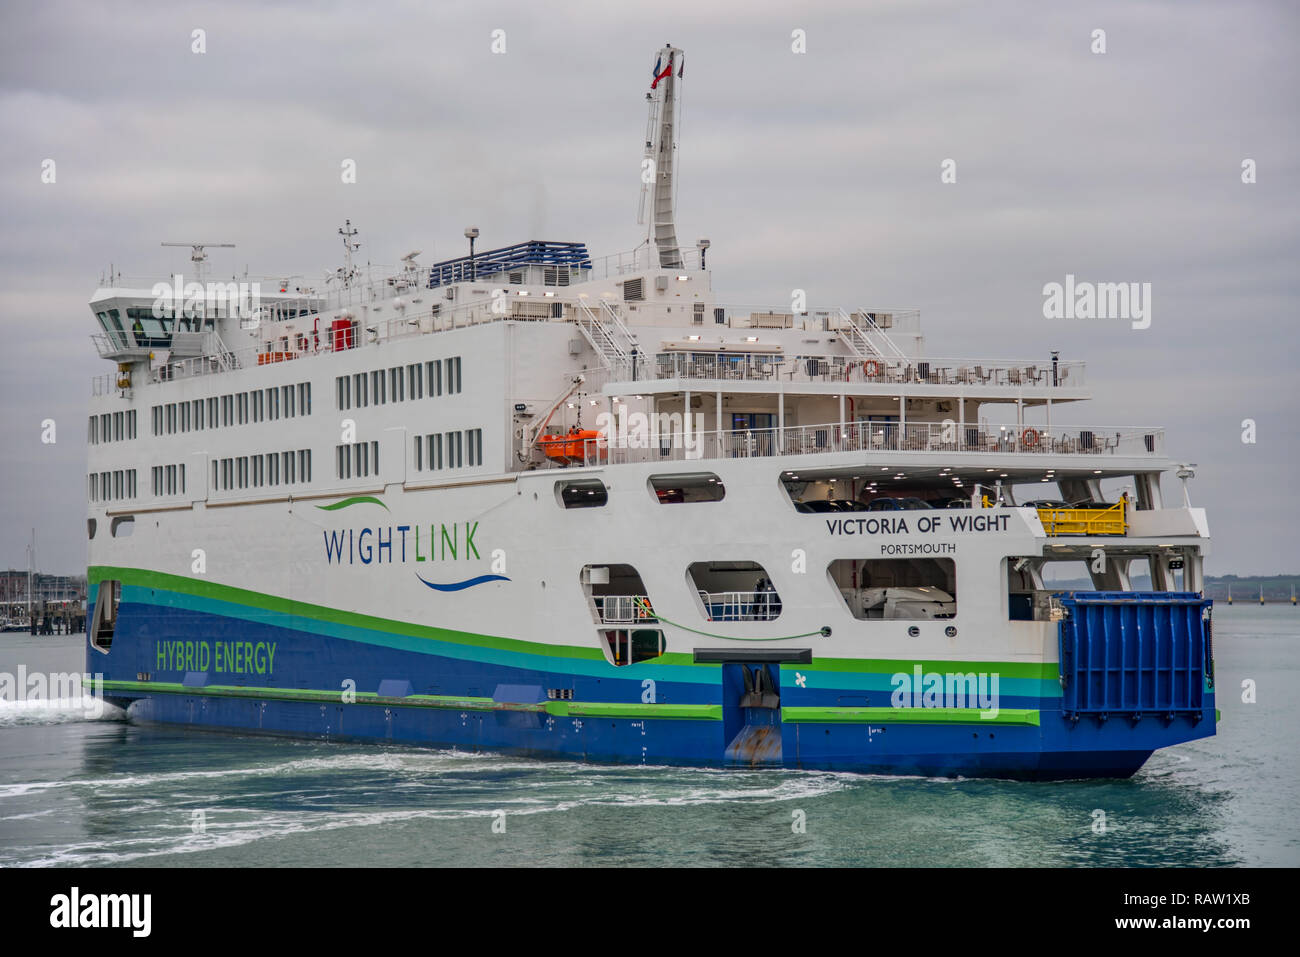 Wightlink car ferry MV Victoria of Wight in Portsmouth Harbour, UK on 3/1/19 preparing to disembark vehicles and passengers at the terminal. Stock Photo